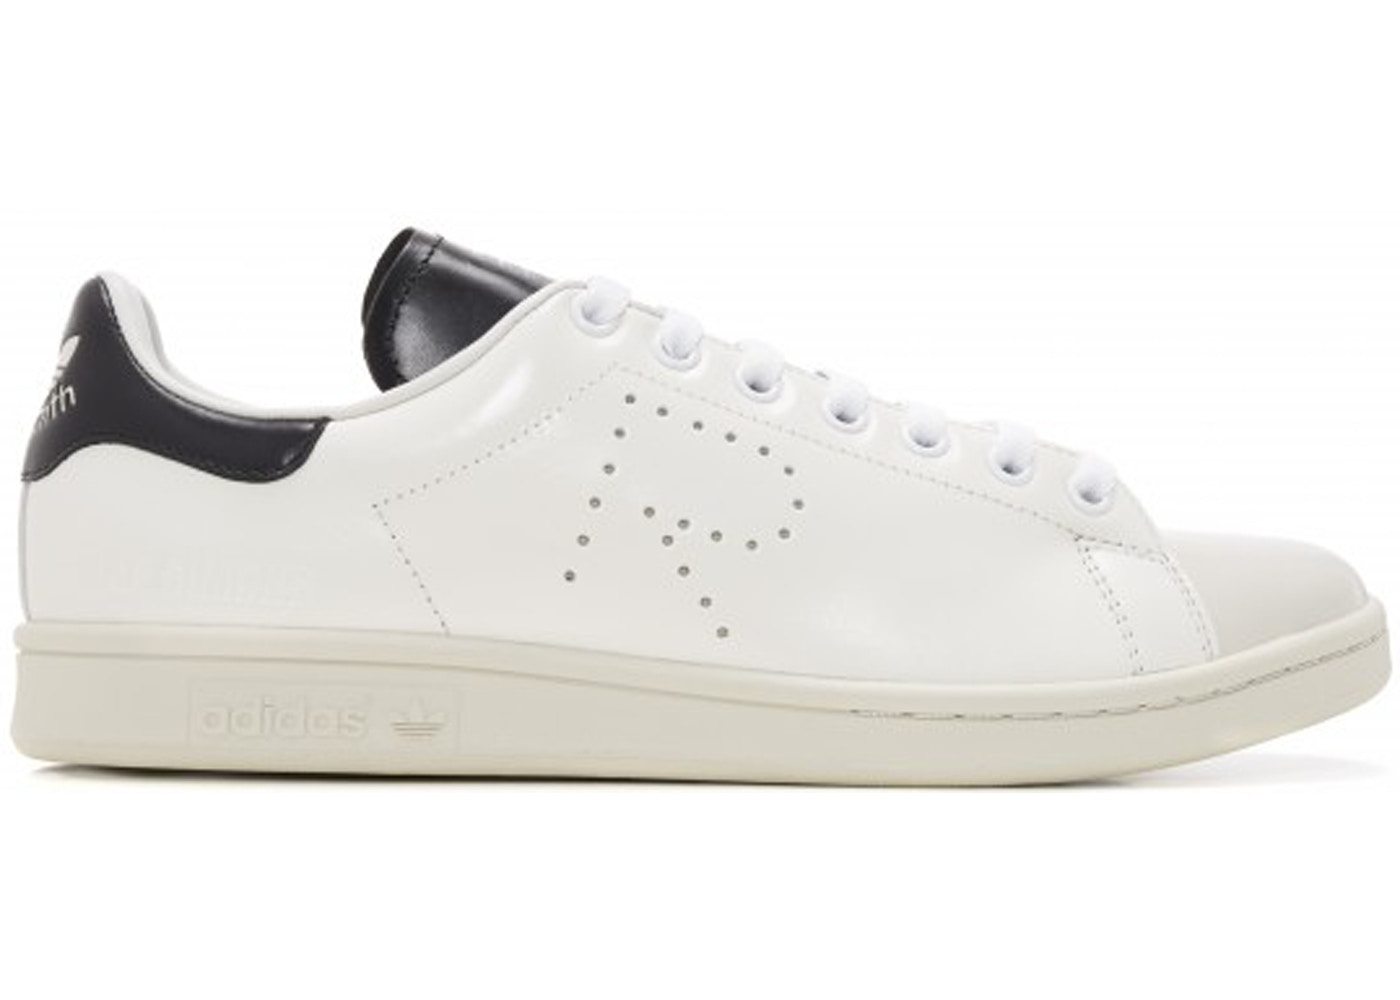 962a6c285d5f adidas Stan Smith Raf Simons White Black - BB6733